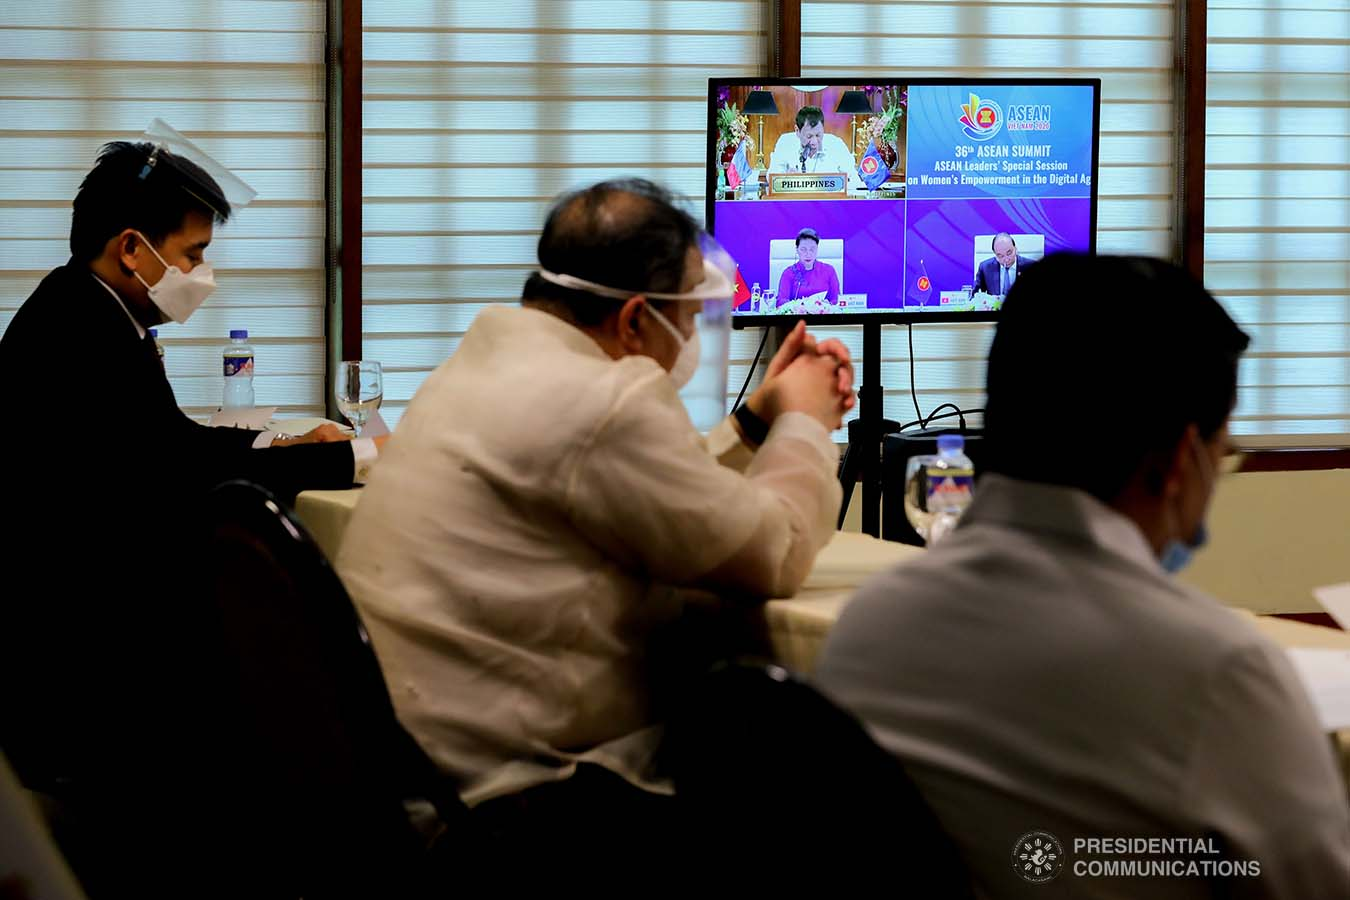 President Rodrigo Roa Duterte gives his intervention as he joins other leaders from the Association of Southeast Asian Nations (ASEAN) member countries during the 36th ASEAN Summit video conference at the Malago Clubhouse in Malacañang on June 26, 2020. ROBINSON NIÑAL JR./PRESIDENTIAL PHOTOS